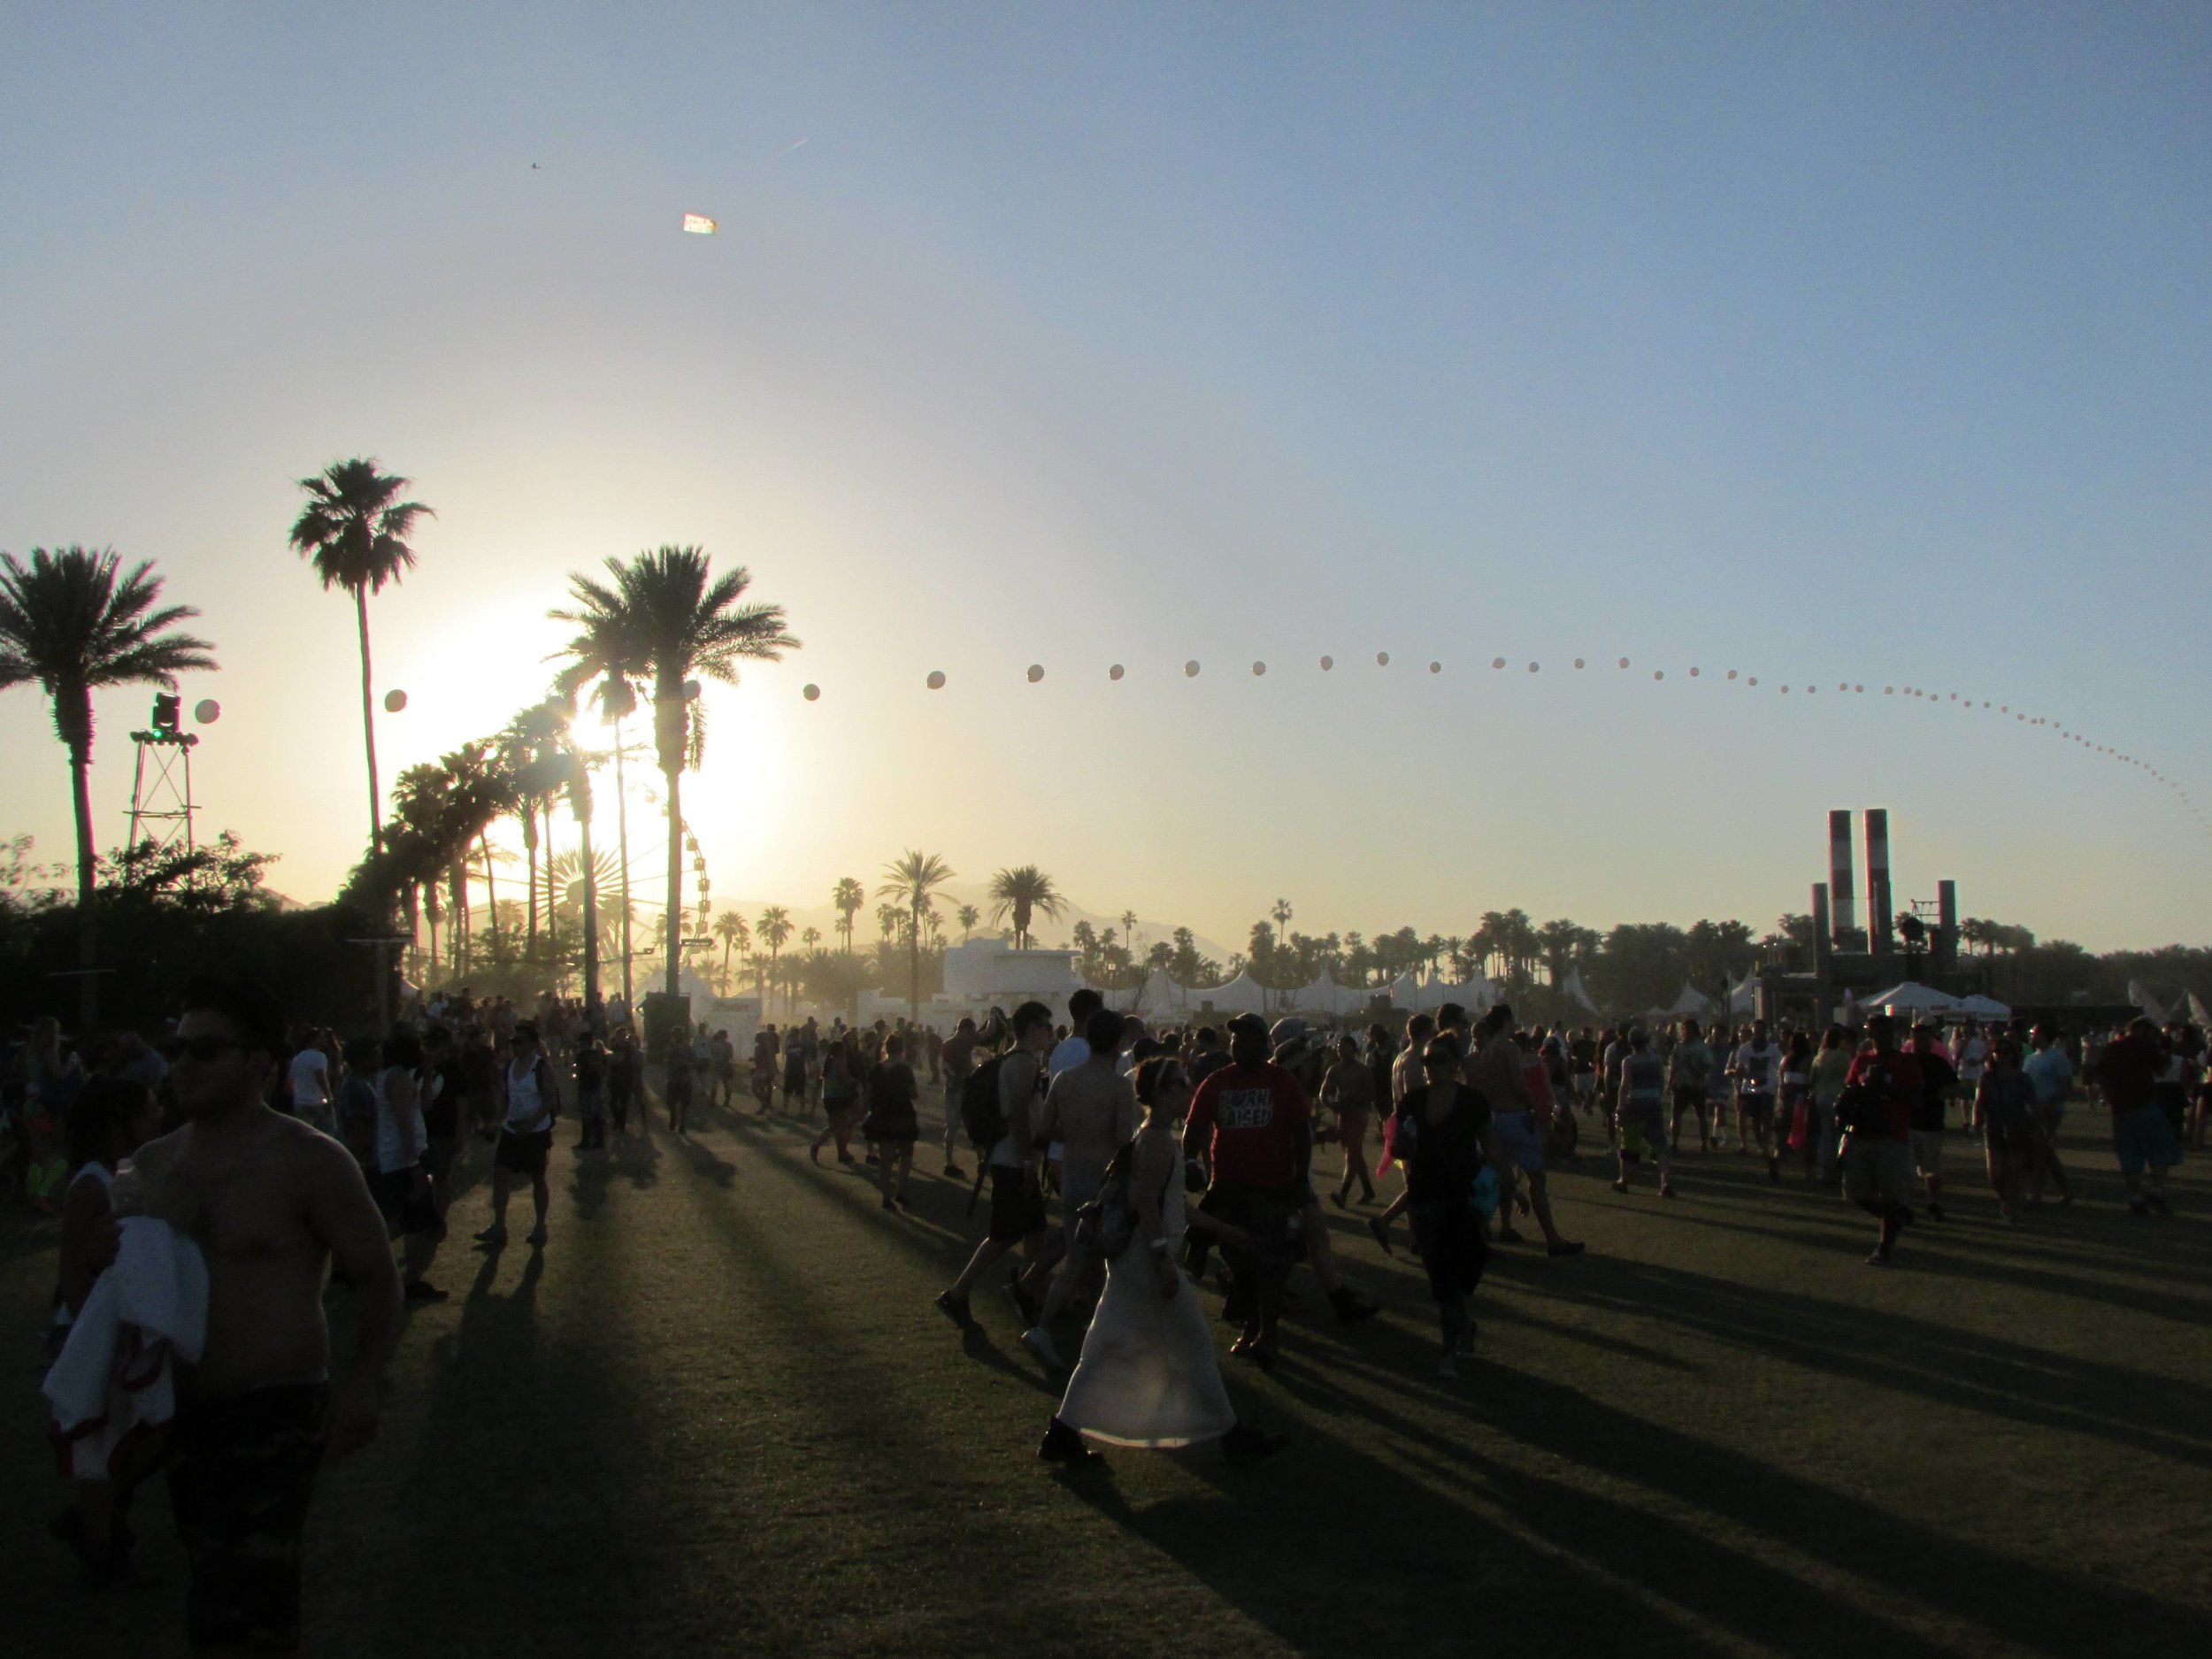 There's a place for everybody under the palm trees of Coachella